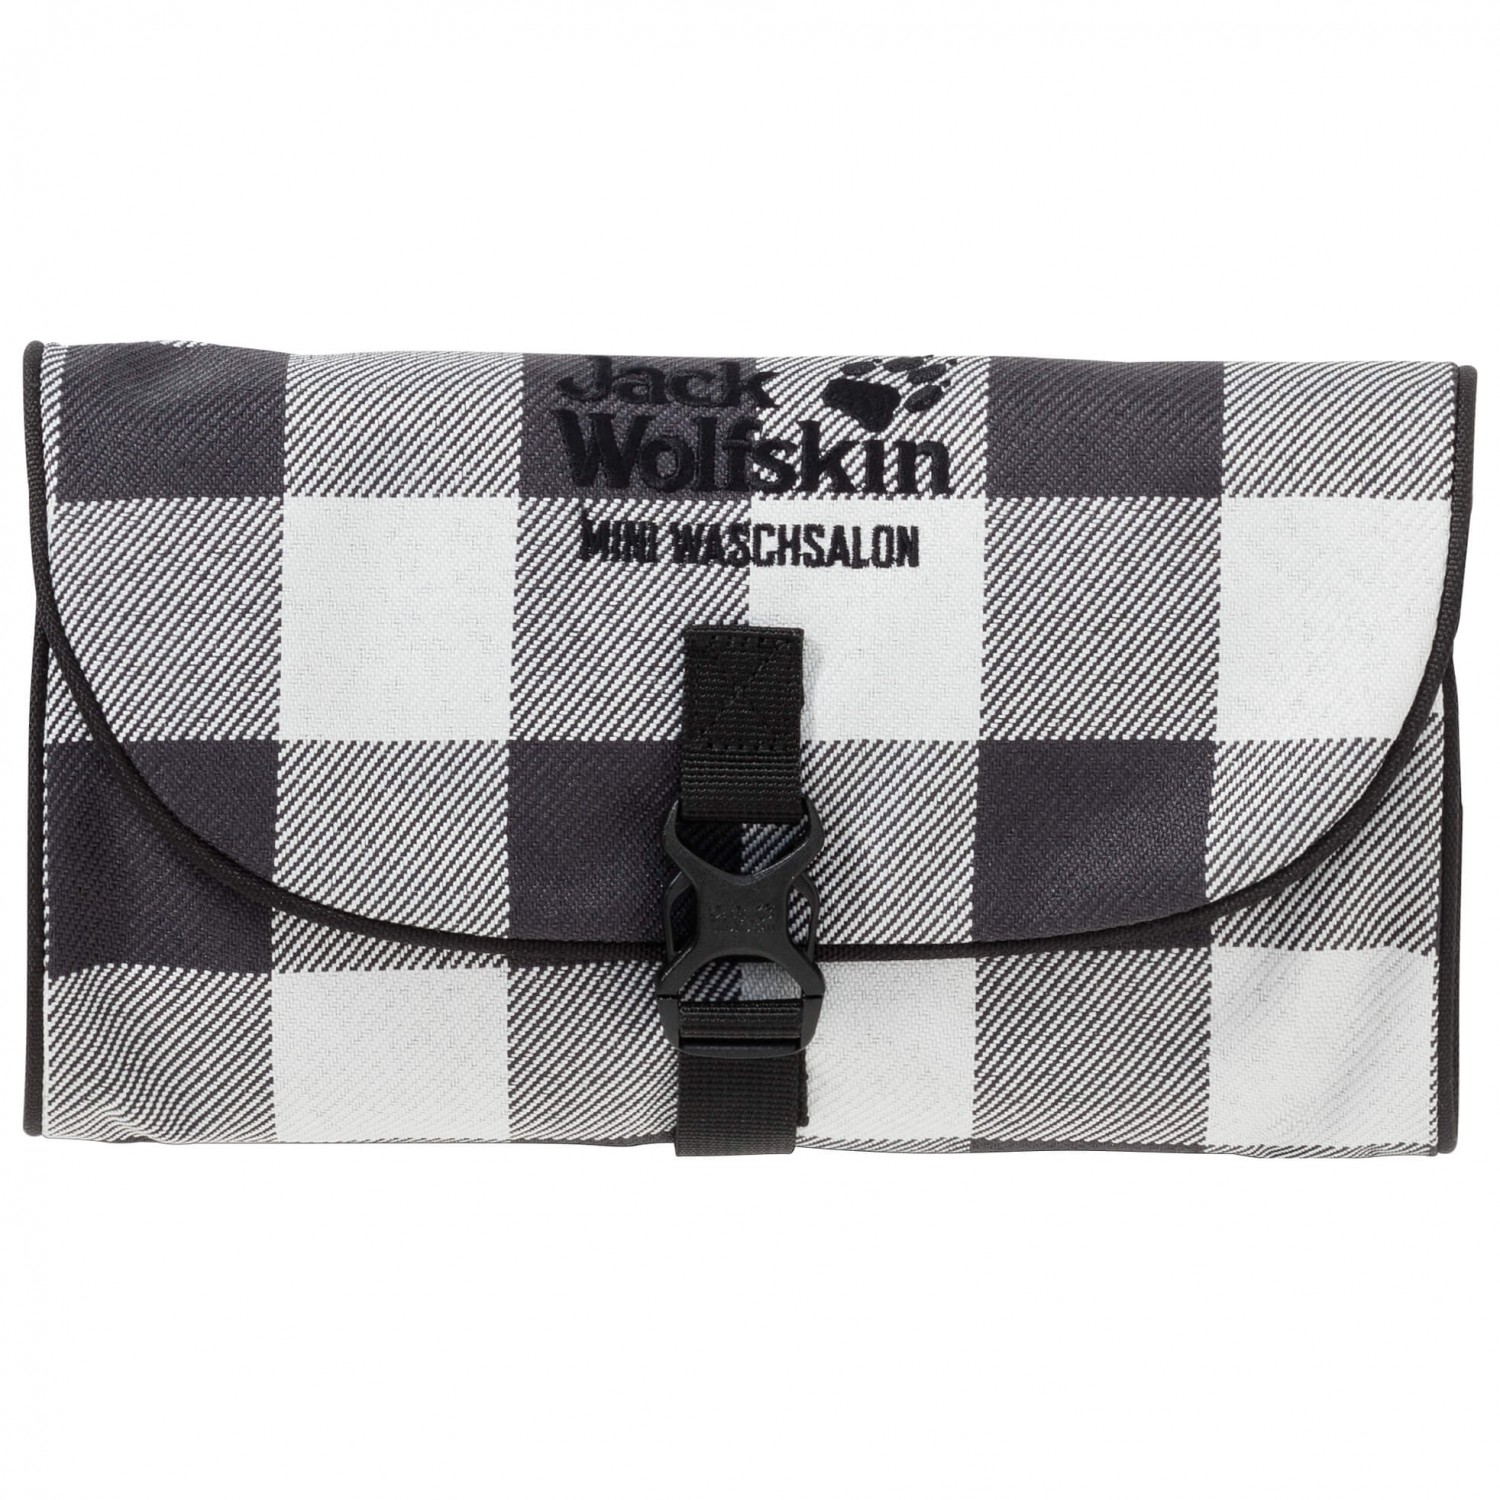 jack wolfskin mini waschsalon wash bags buy online. Black Bedroom Furniture Sets. Home Design Ideas